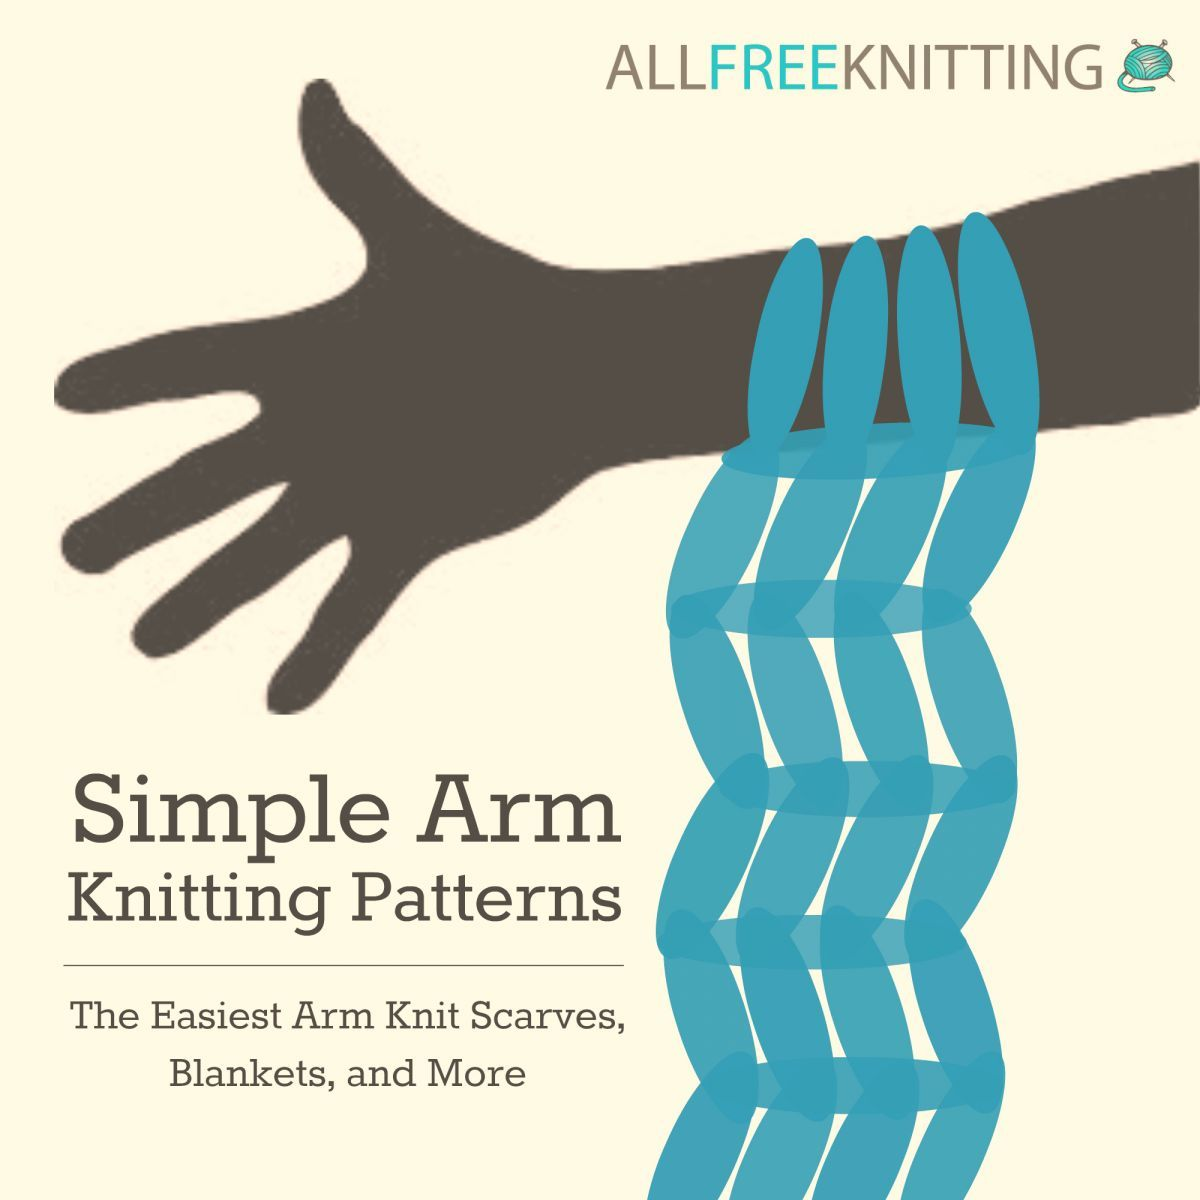 Simple Arm Knitting Patterns: The Easiest Arm Knit Scarves, Blankets ...